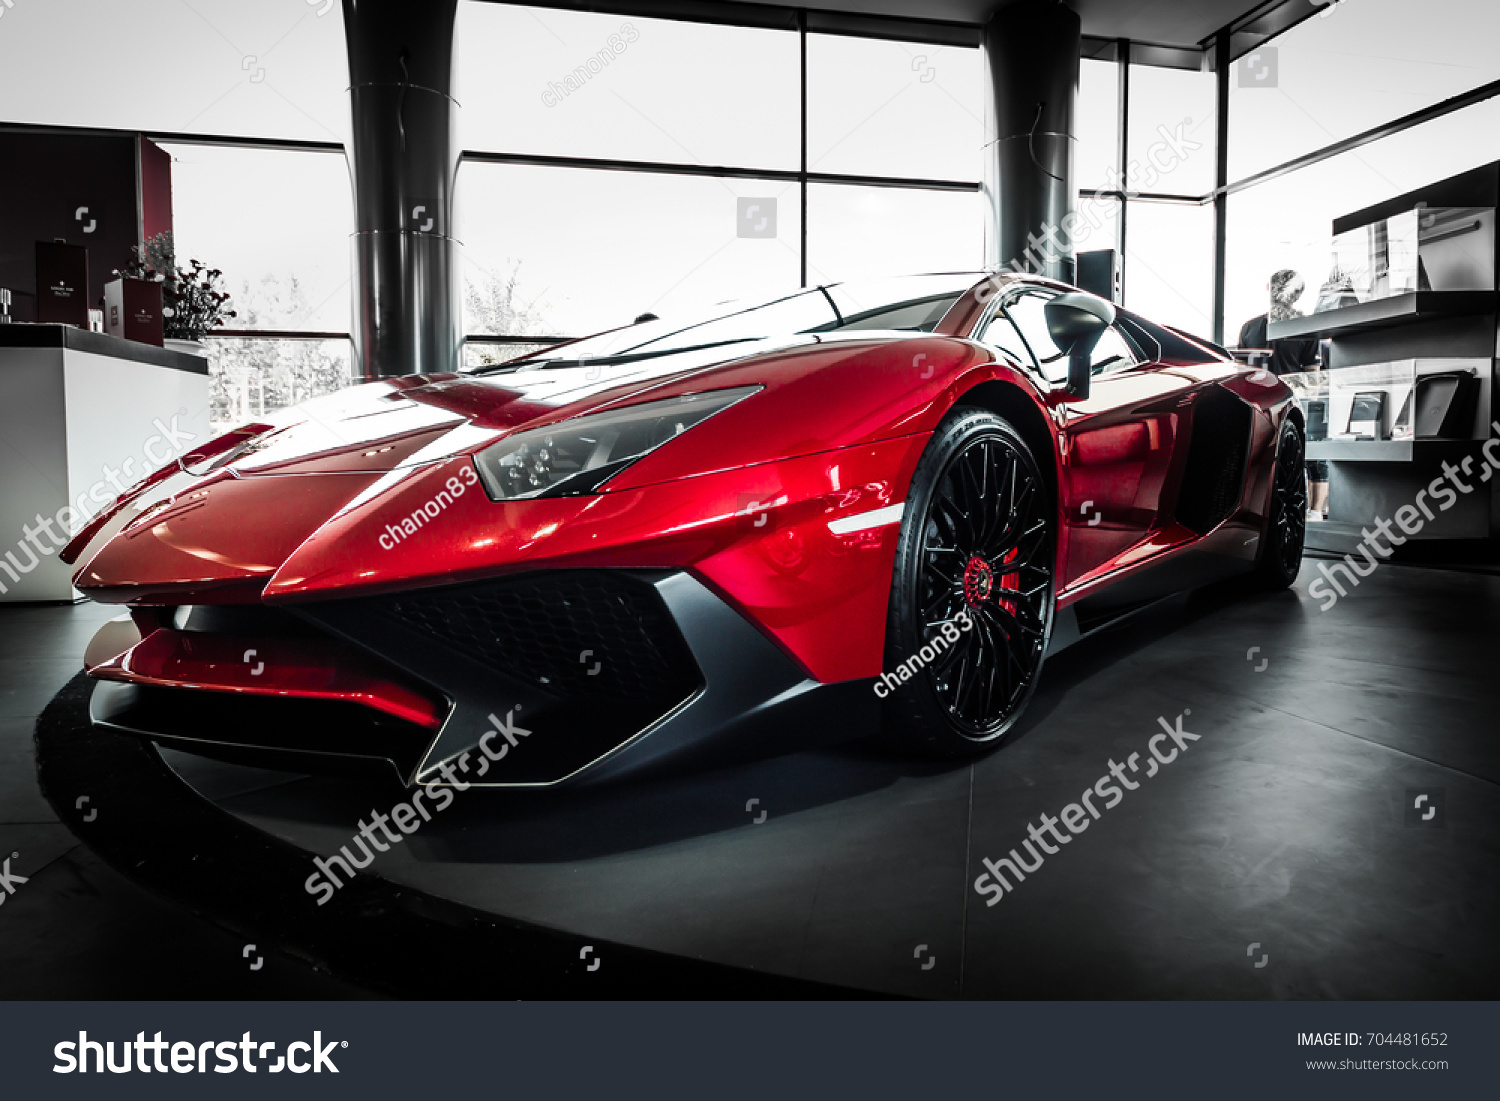 Bangkok, Thailand   August 26, 2016: Niche Cars Group Launches Lamborghini  Aventador SuperVeloce